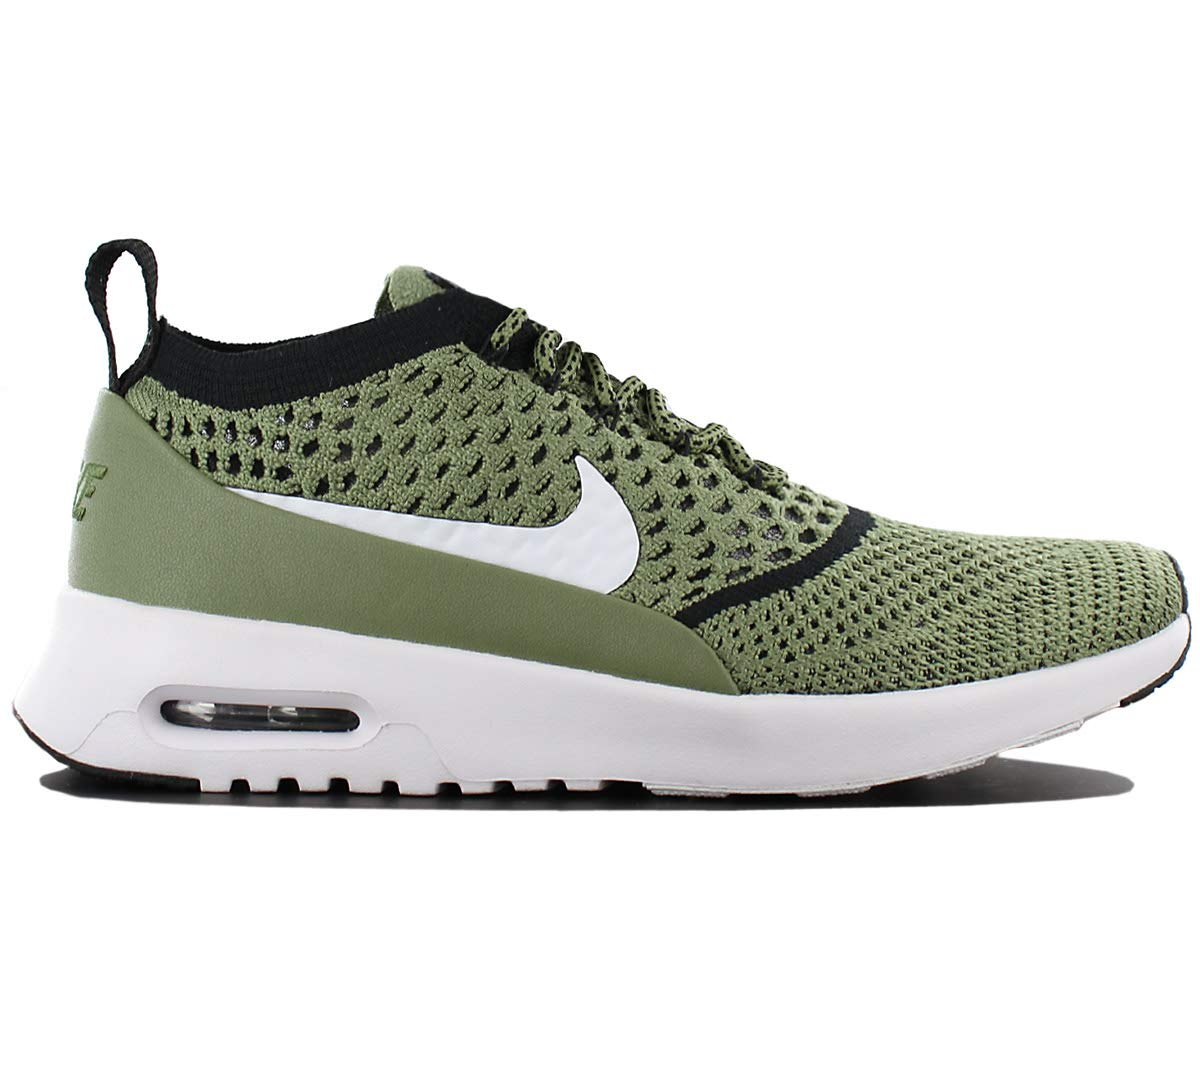 e737177868 Galleon - Nike Air Max Thea Ultra Fk Womens Running Trainers 881175  Sneakers Shoes (UK 6.5 US 9 EU 40.5, Palm Green White Black 300)